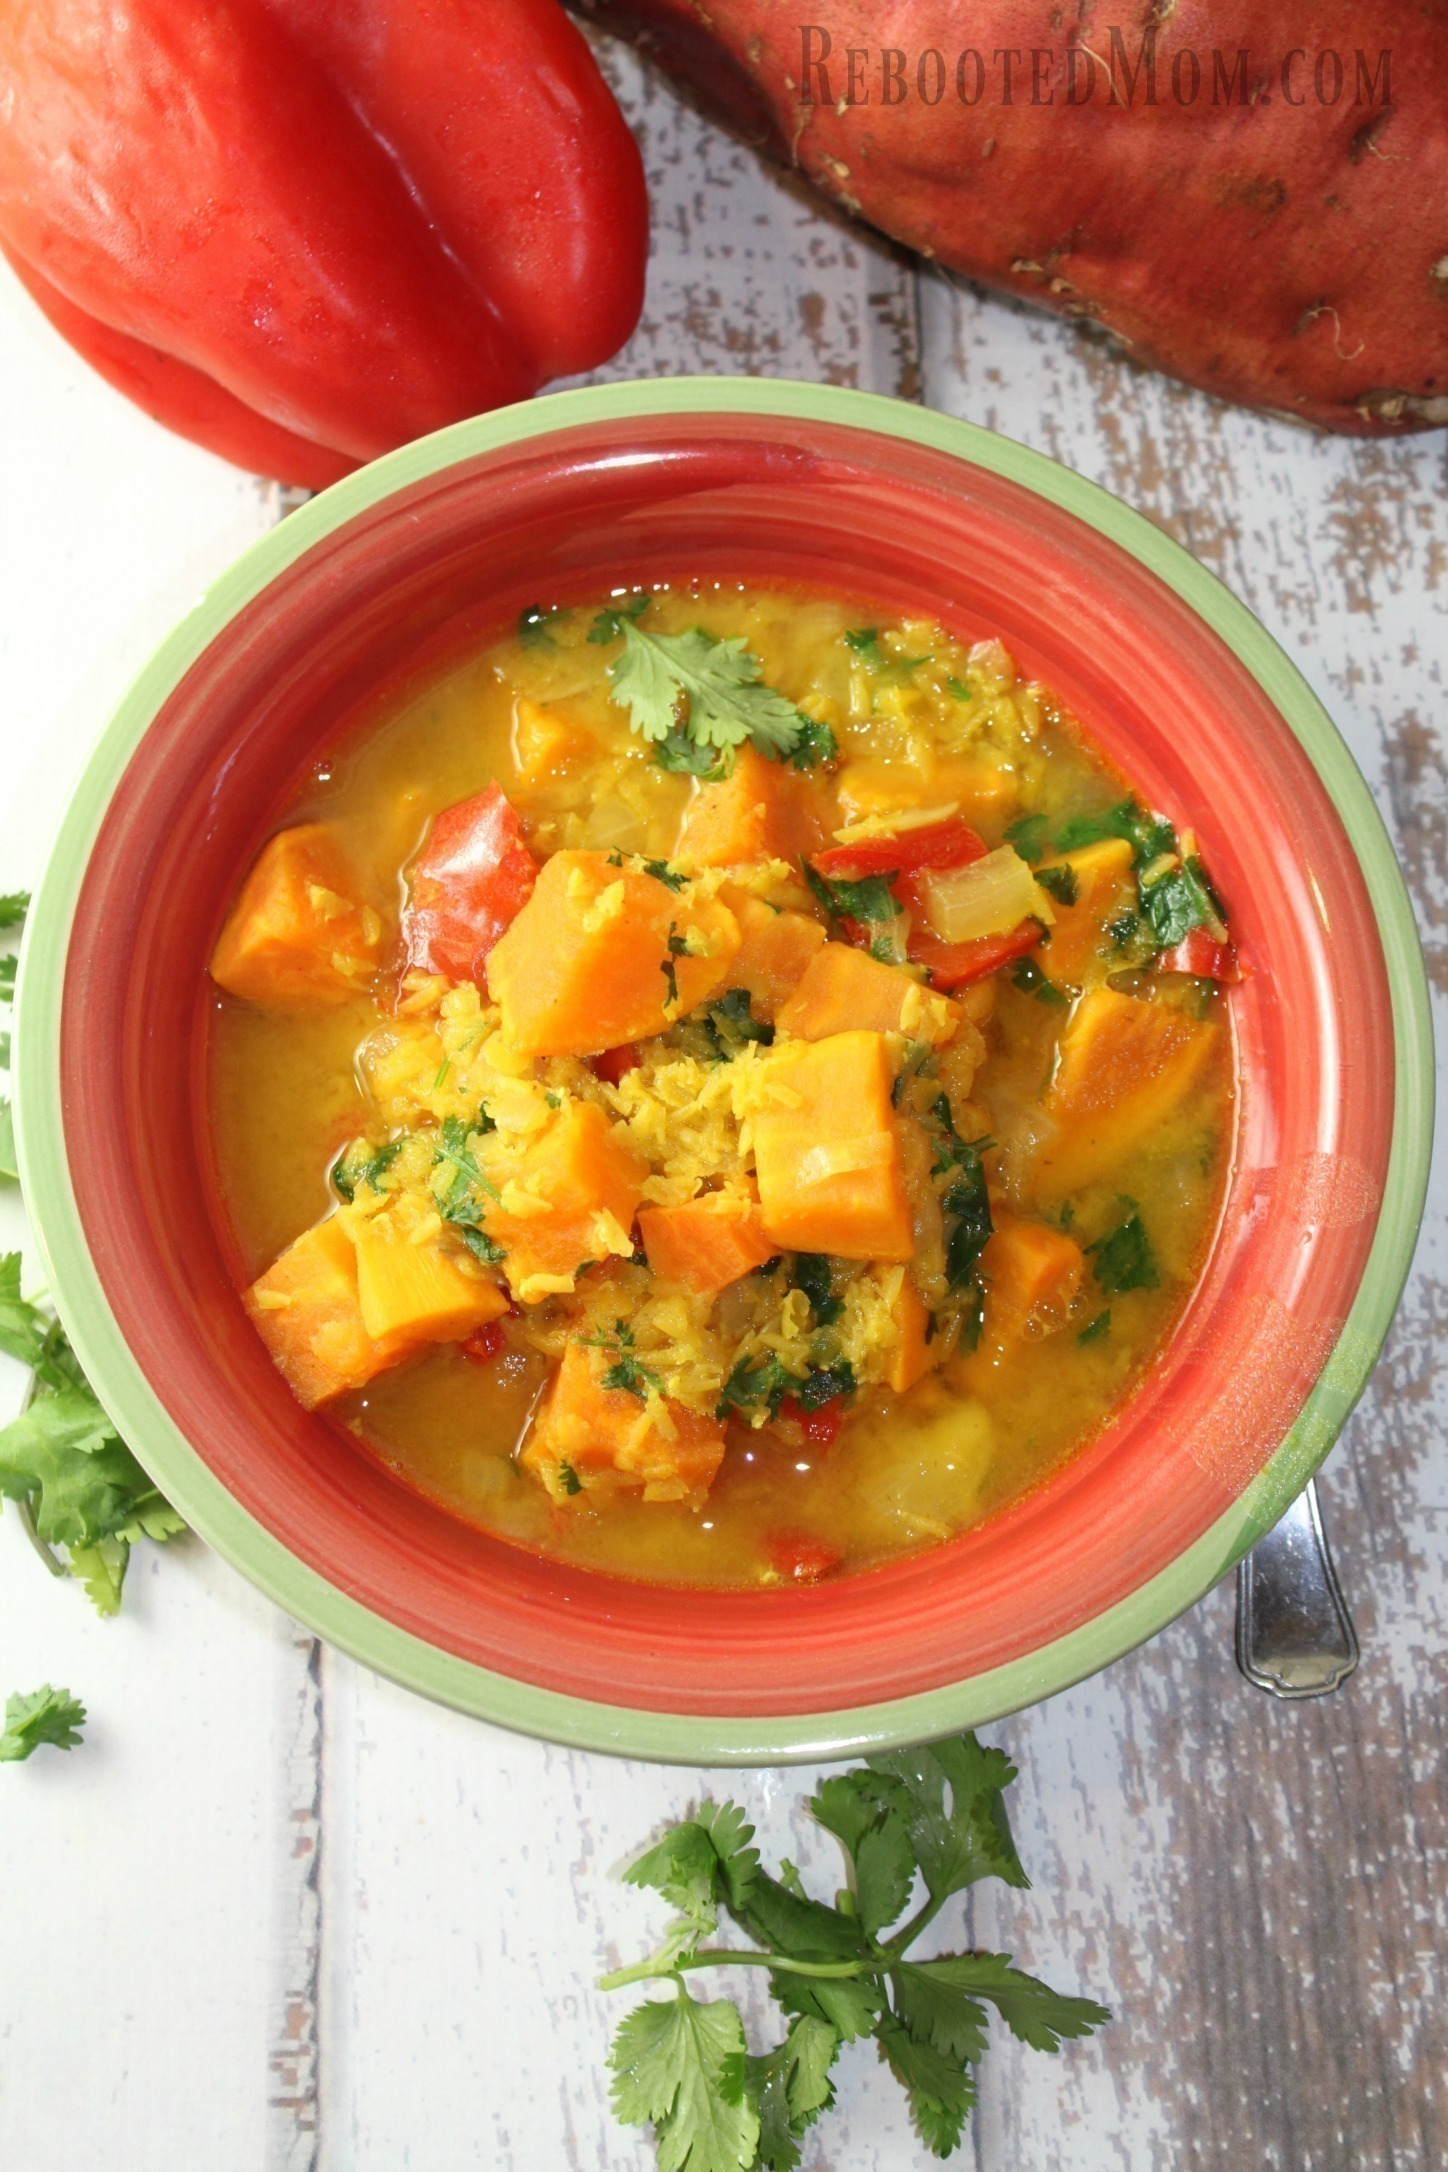 This Red Lentil & Sweet Potato Stew is not only meatless, it is chock full of flavor, protein and fiber.